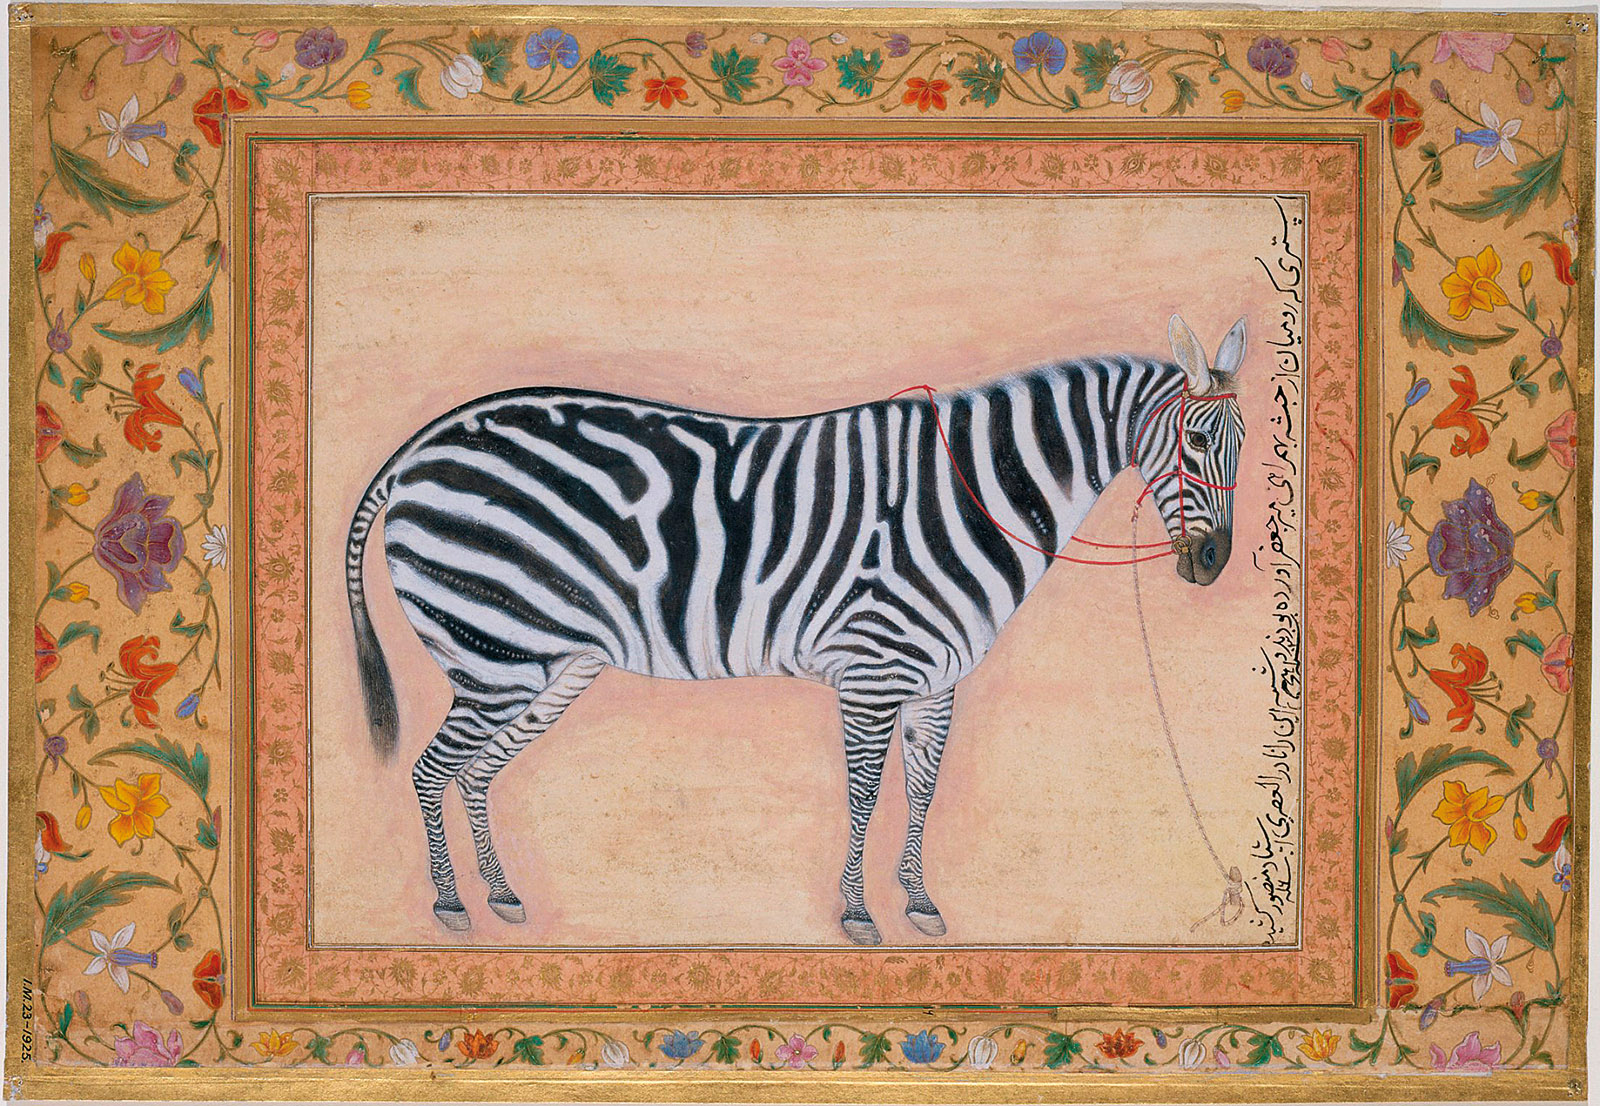 A zebra at the Mughal Court; painting by Ustad Mansur of the school of Jahangir, India